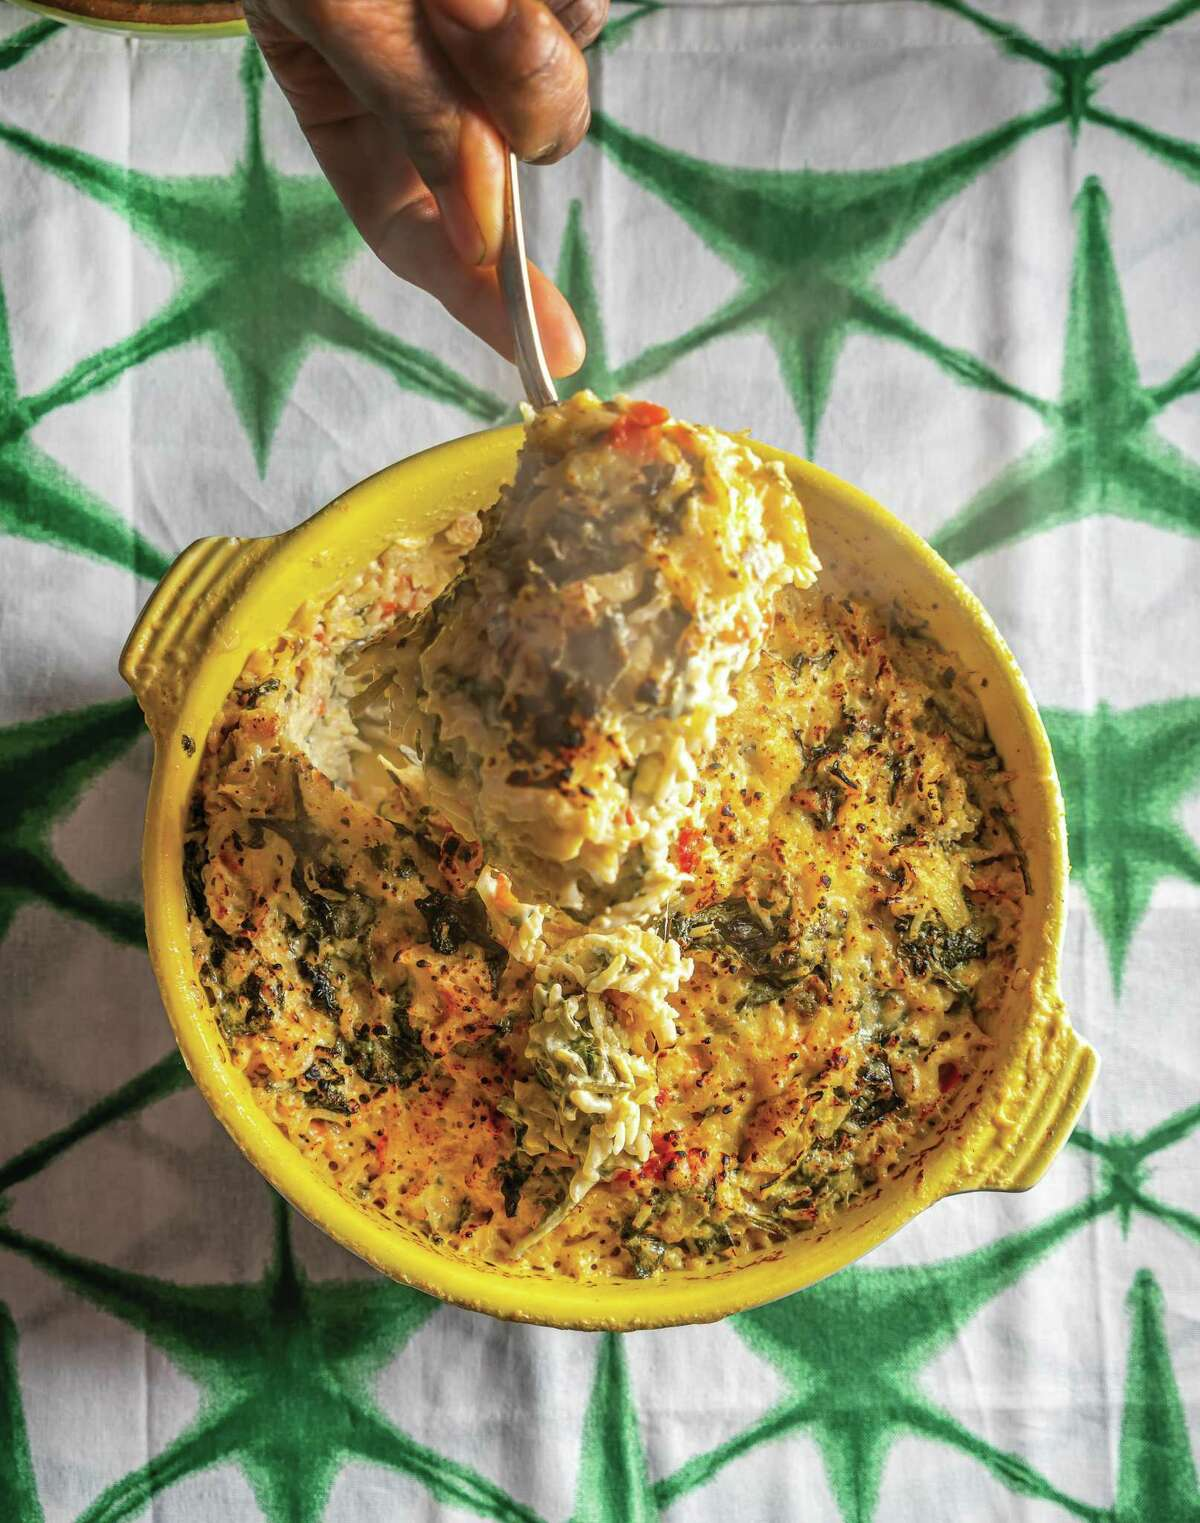 """Grandma Lue's Spinach Rice from """"The Twisted Soul Cookbook: Modern Soul Food with Global Flavors"""" by Deborah VanTrece."""